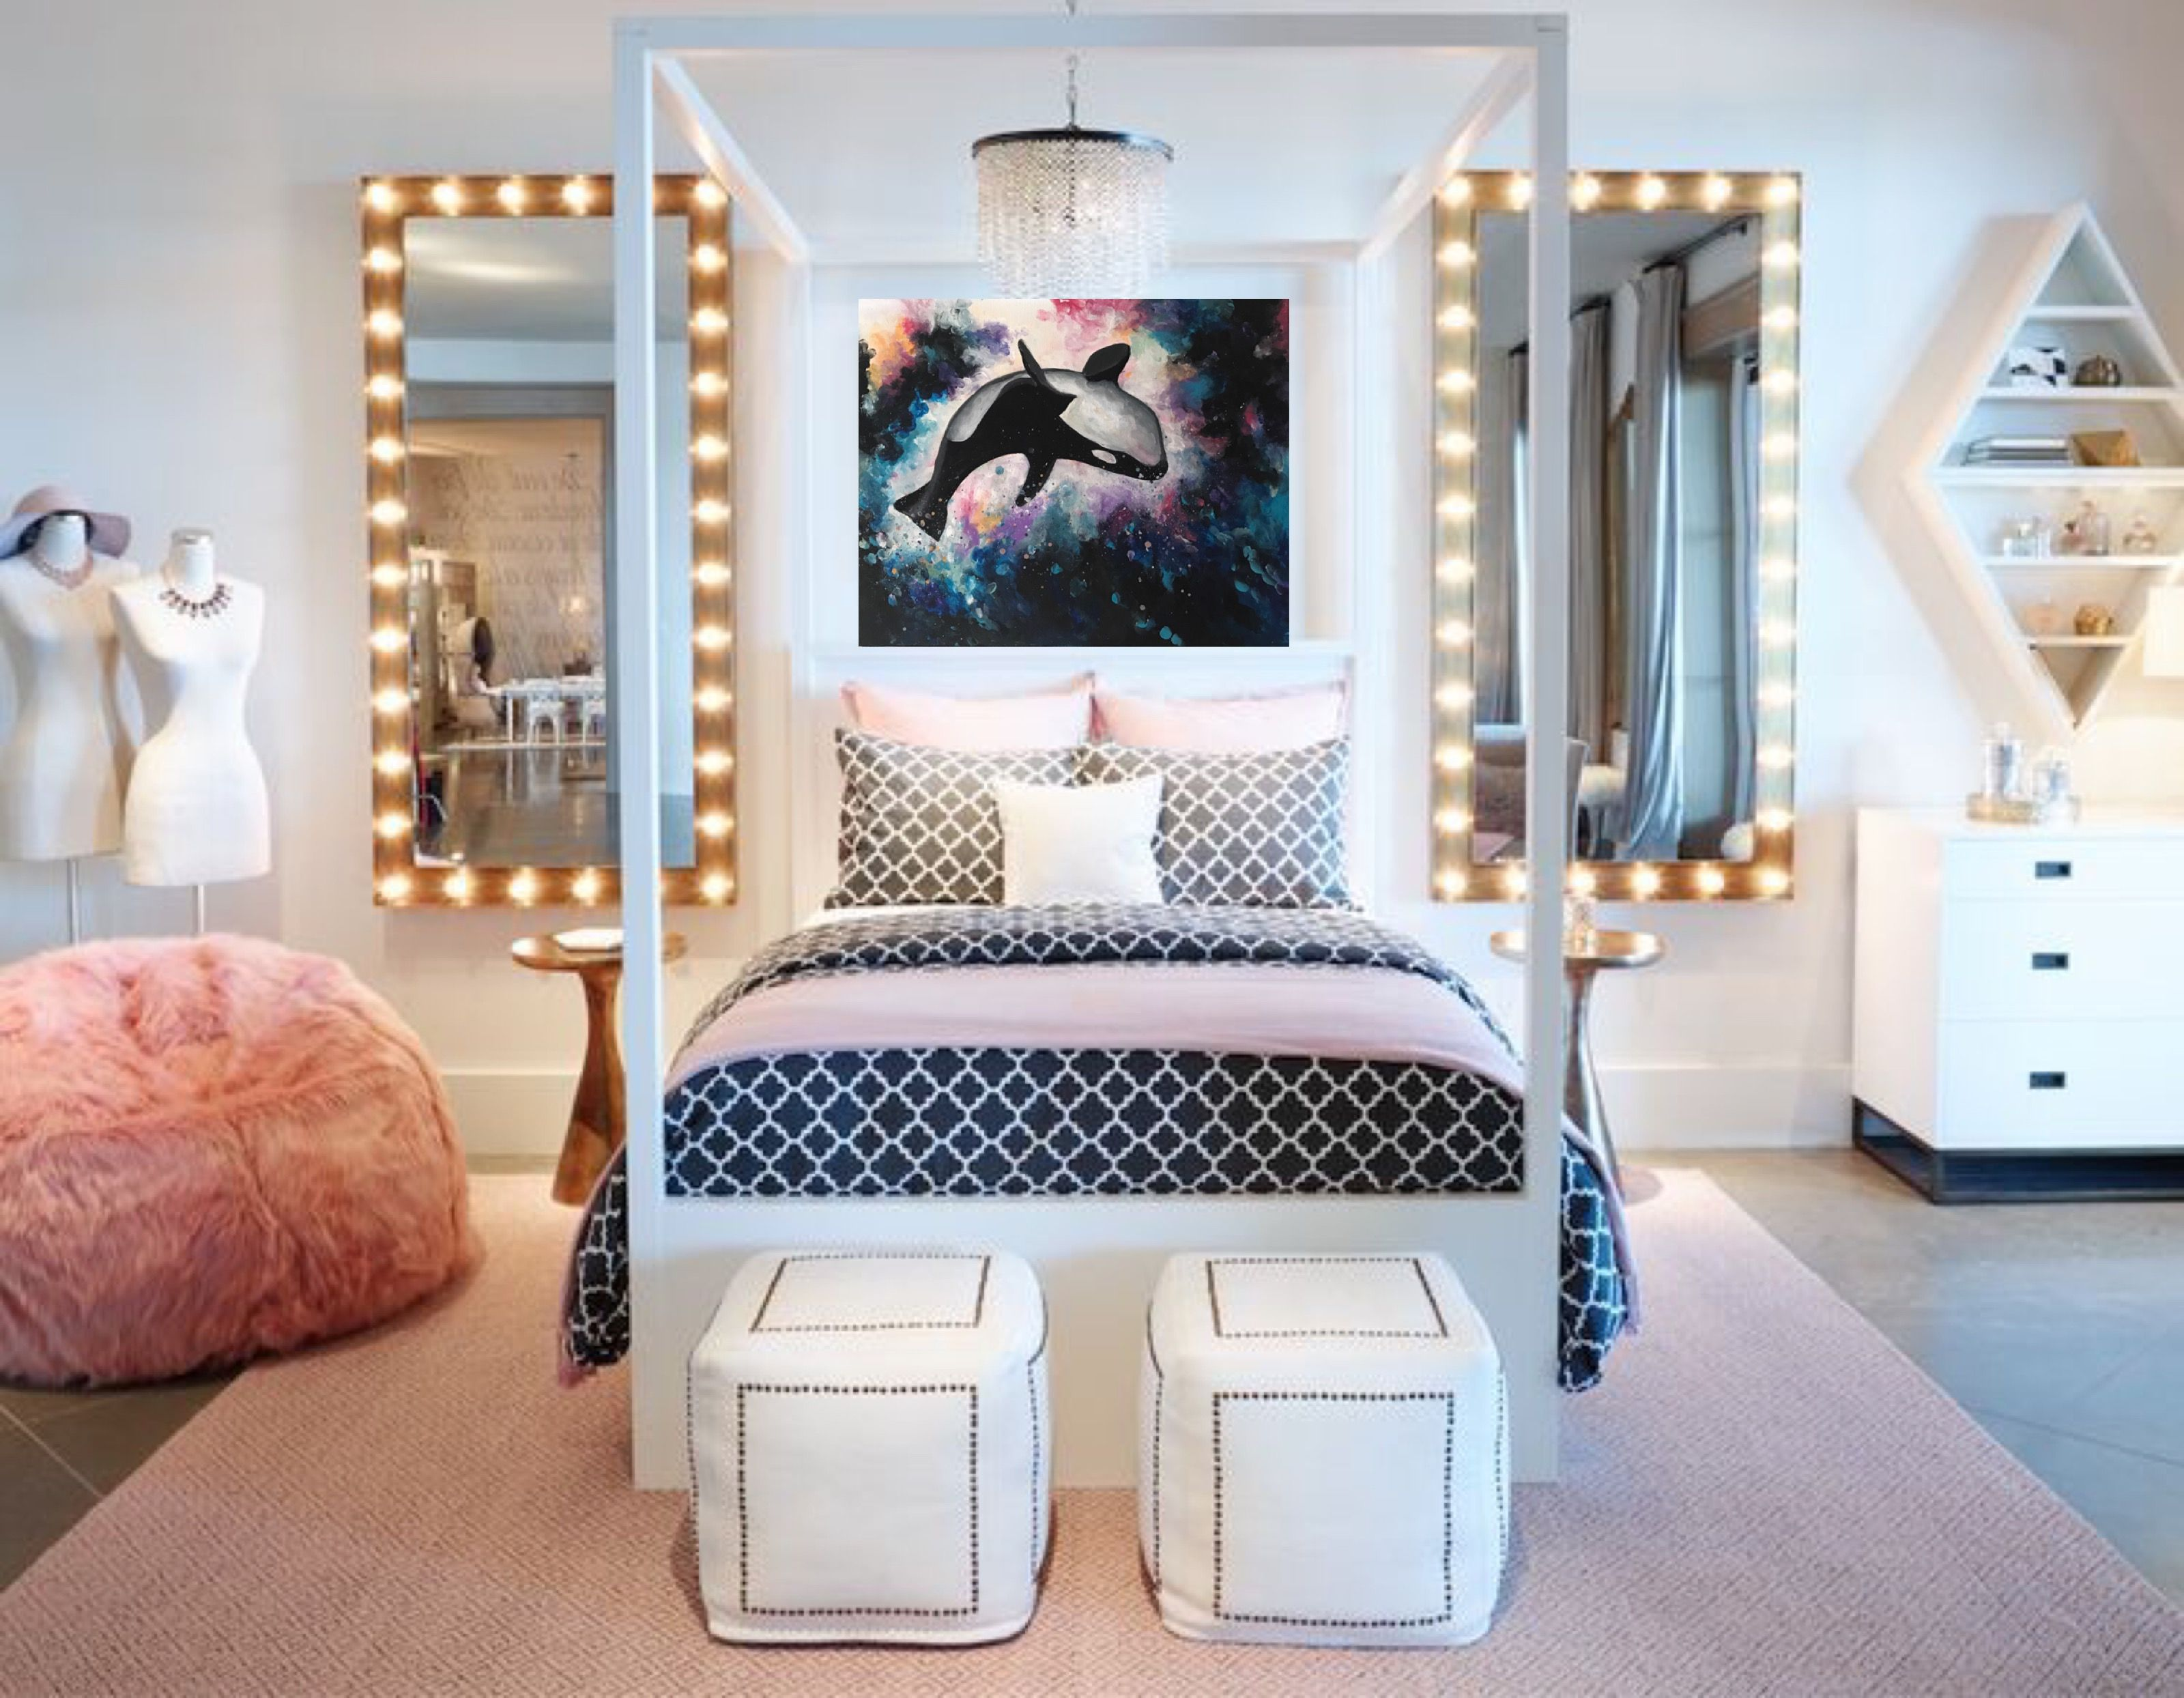 Glam Bedroom Inspiration Glam Bedroom Glamorous Bedroom Glam Art Fashion Art